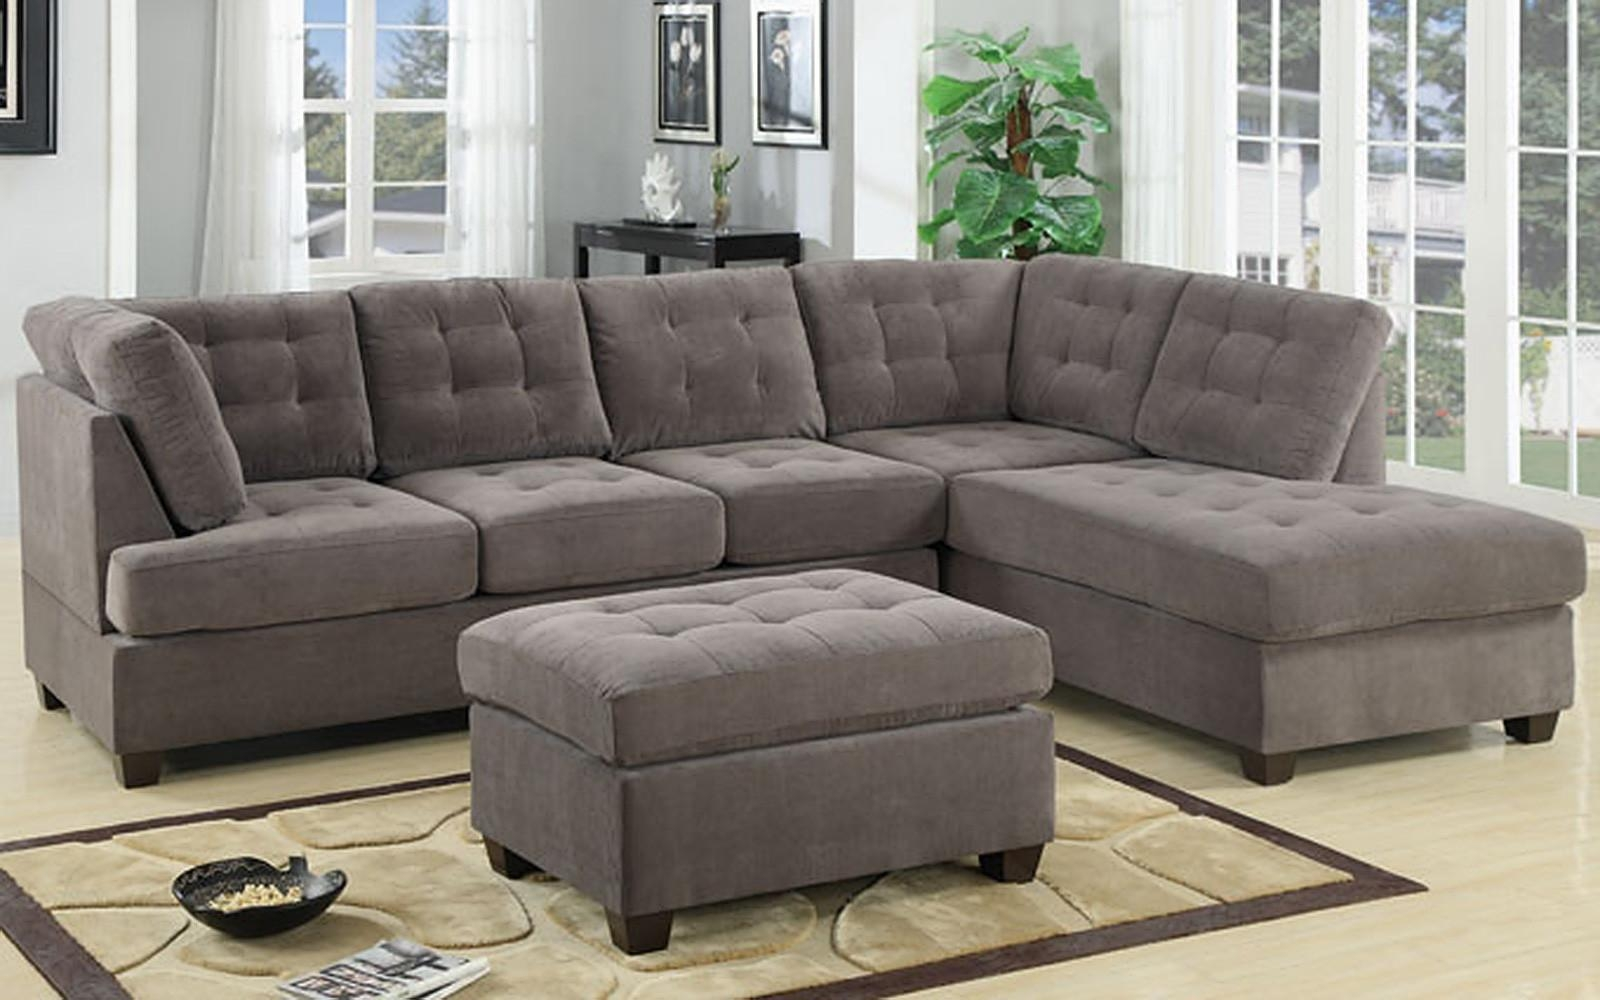 Bobkona Benford 2 Piece Chaise Sectional Sofa Collection With Faux In Sectional Sofa With 2 Chaises (View 19 of 20)